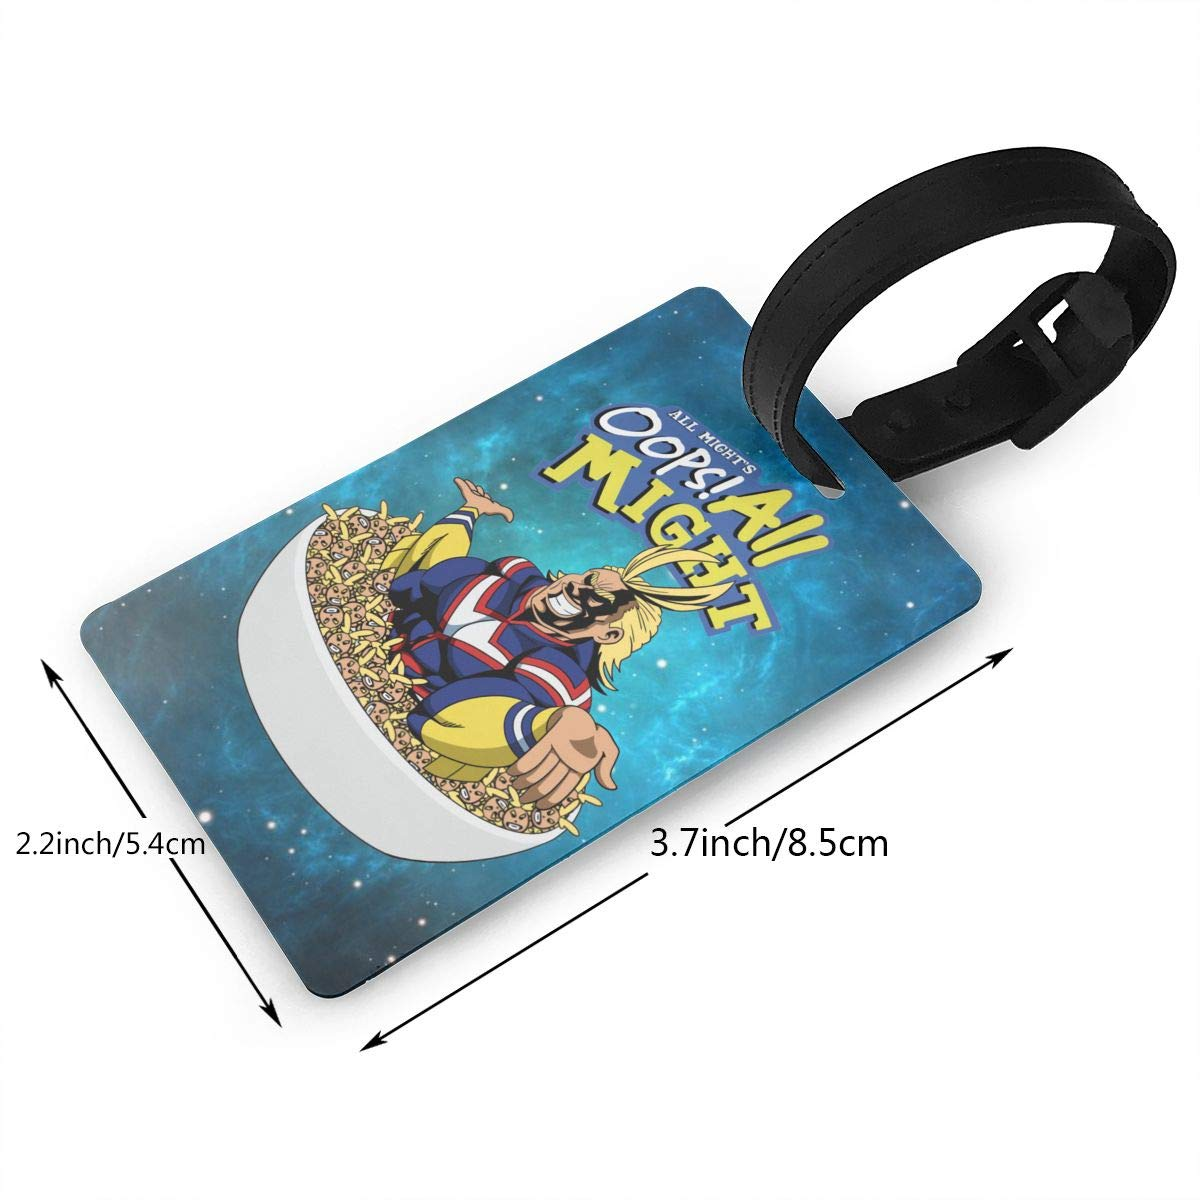 My Hero Academia Souvenir Travel Accessory Luggage ID Tag Suitcase Carry-on Baggage